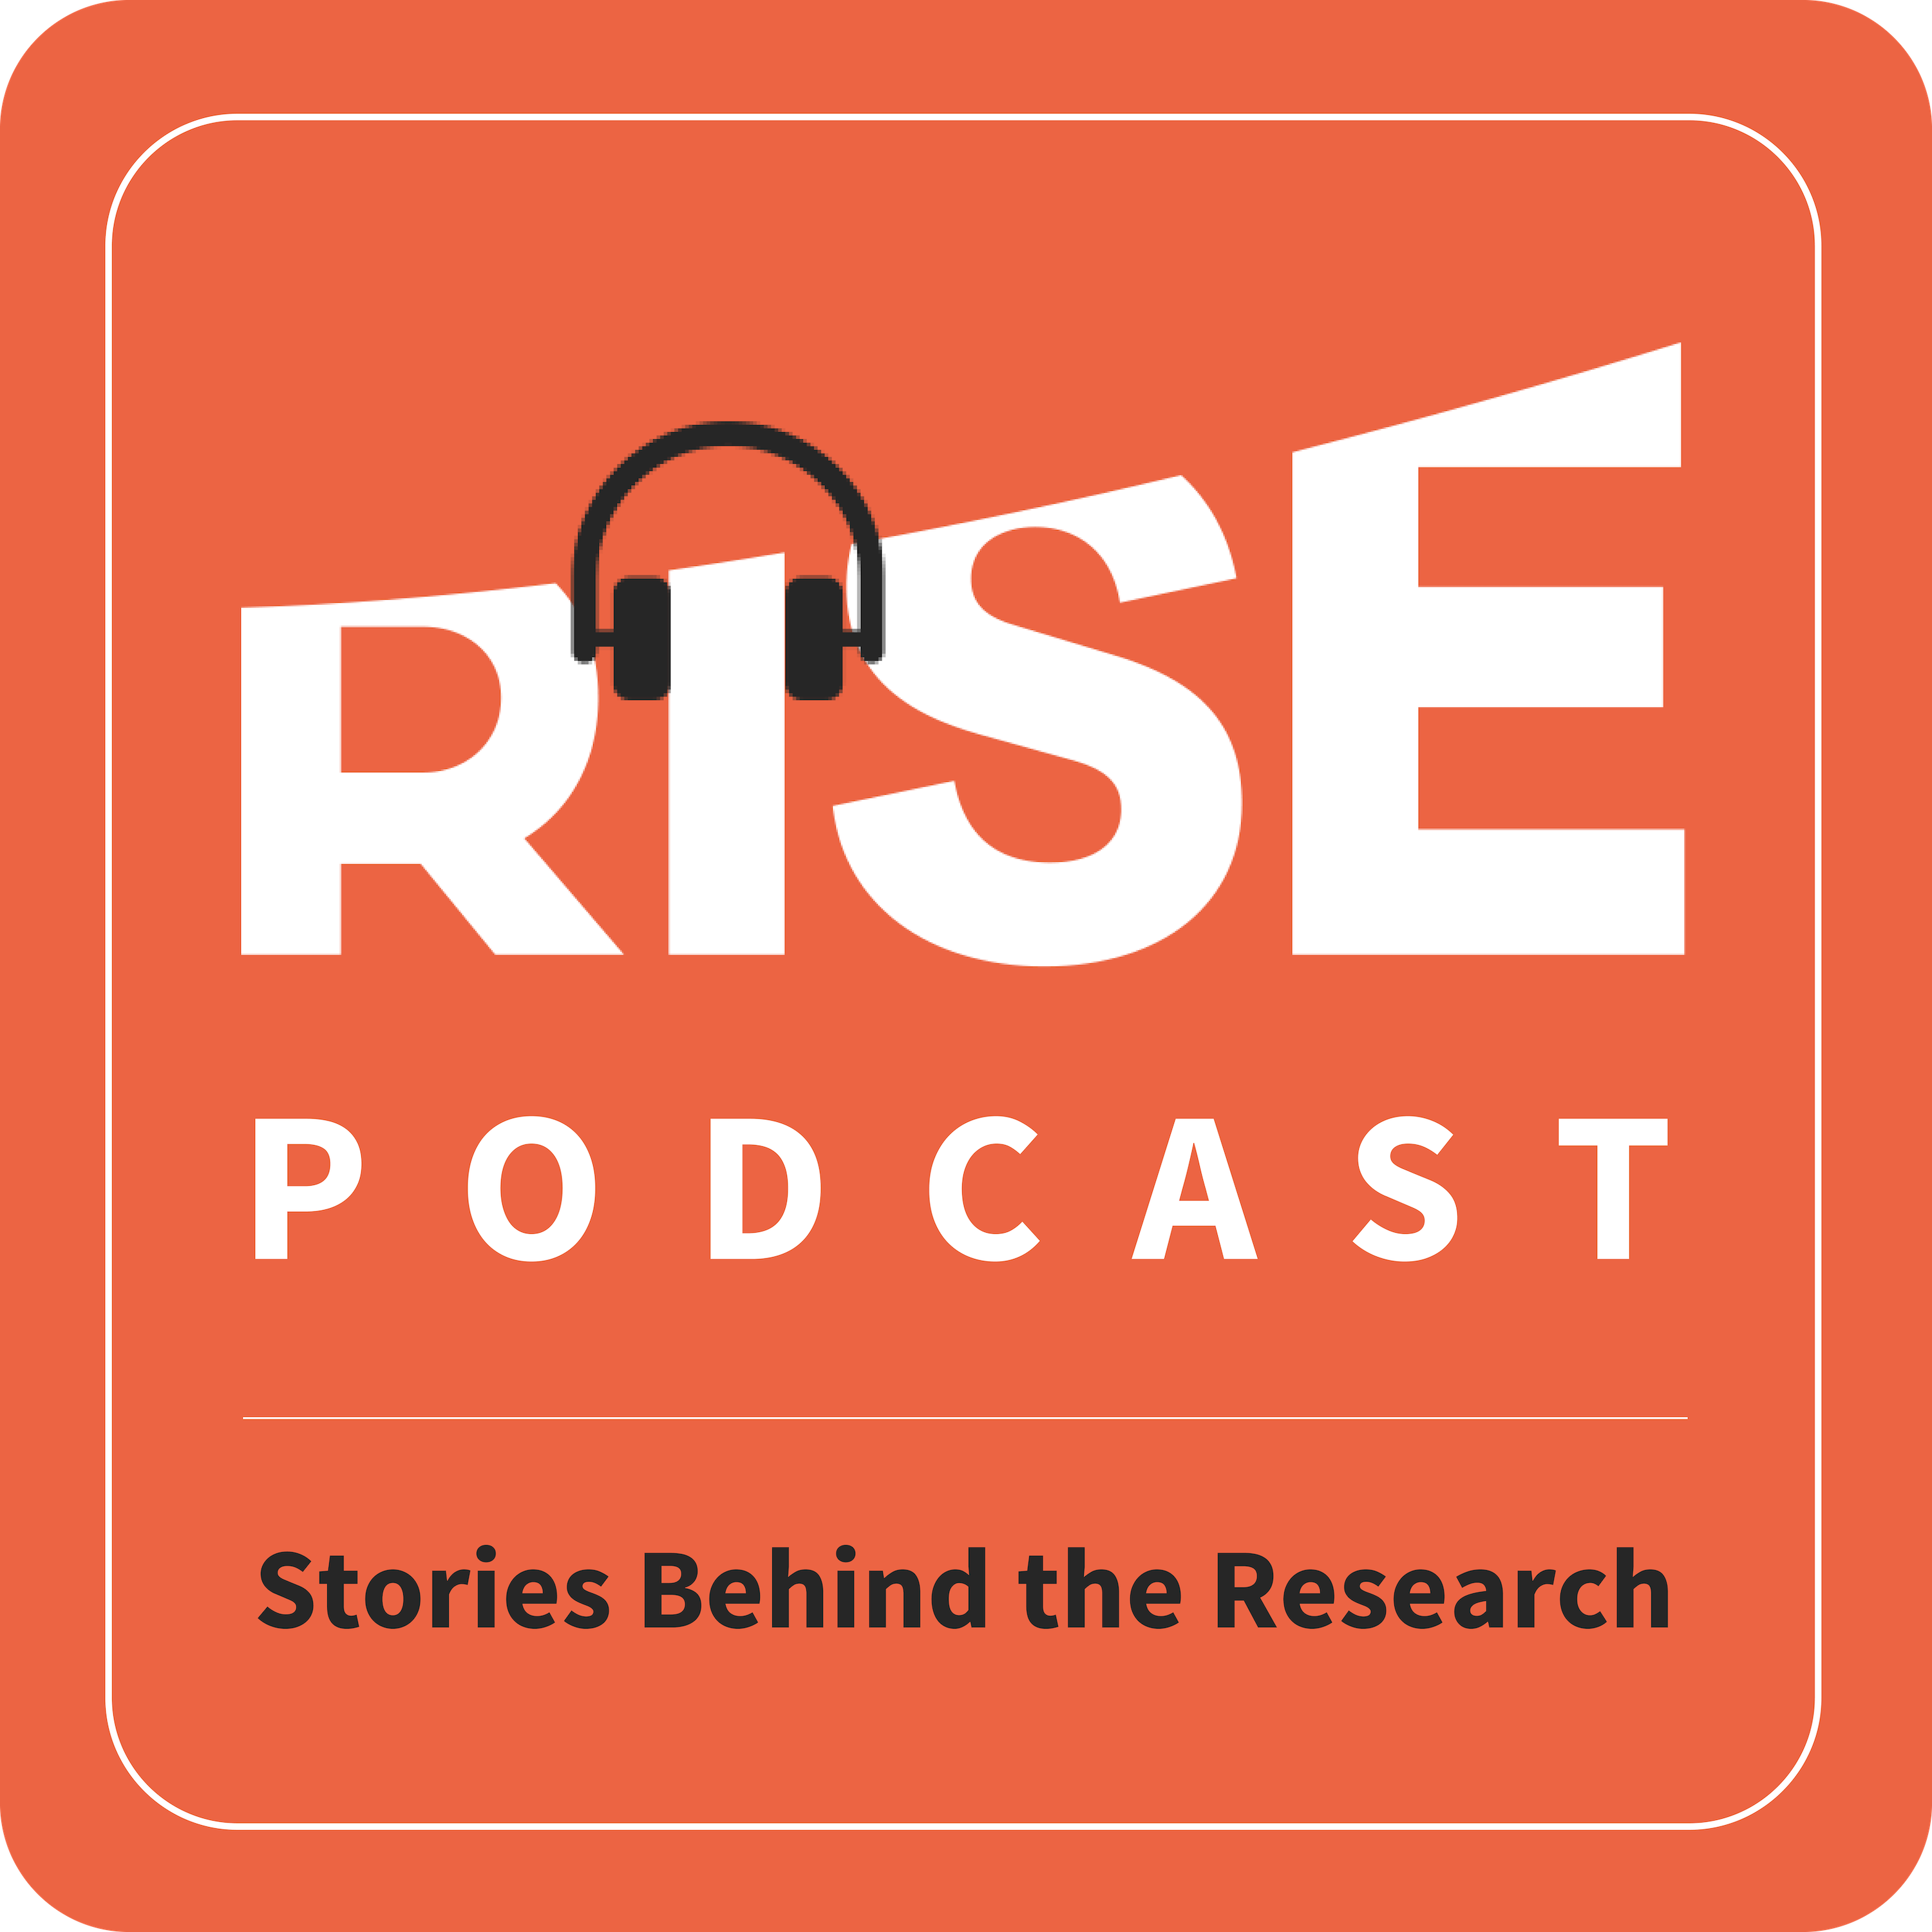 Artwork for podcast The RISE Podcast